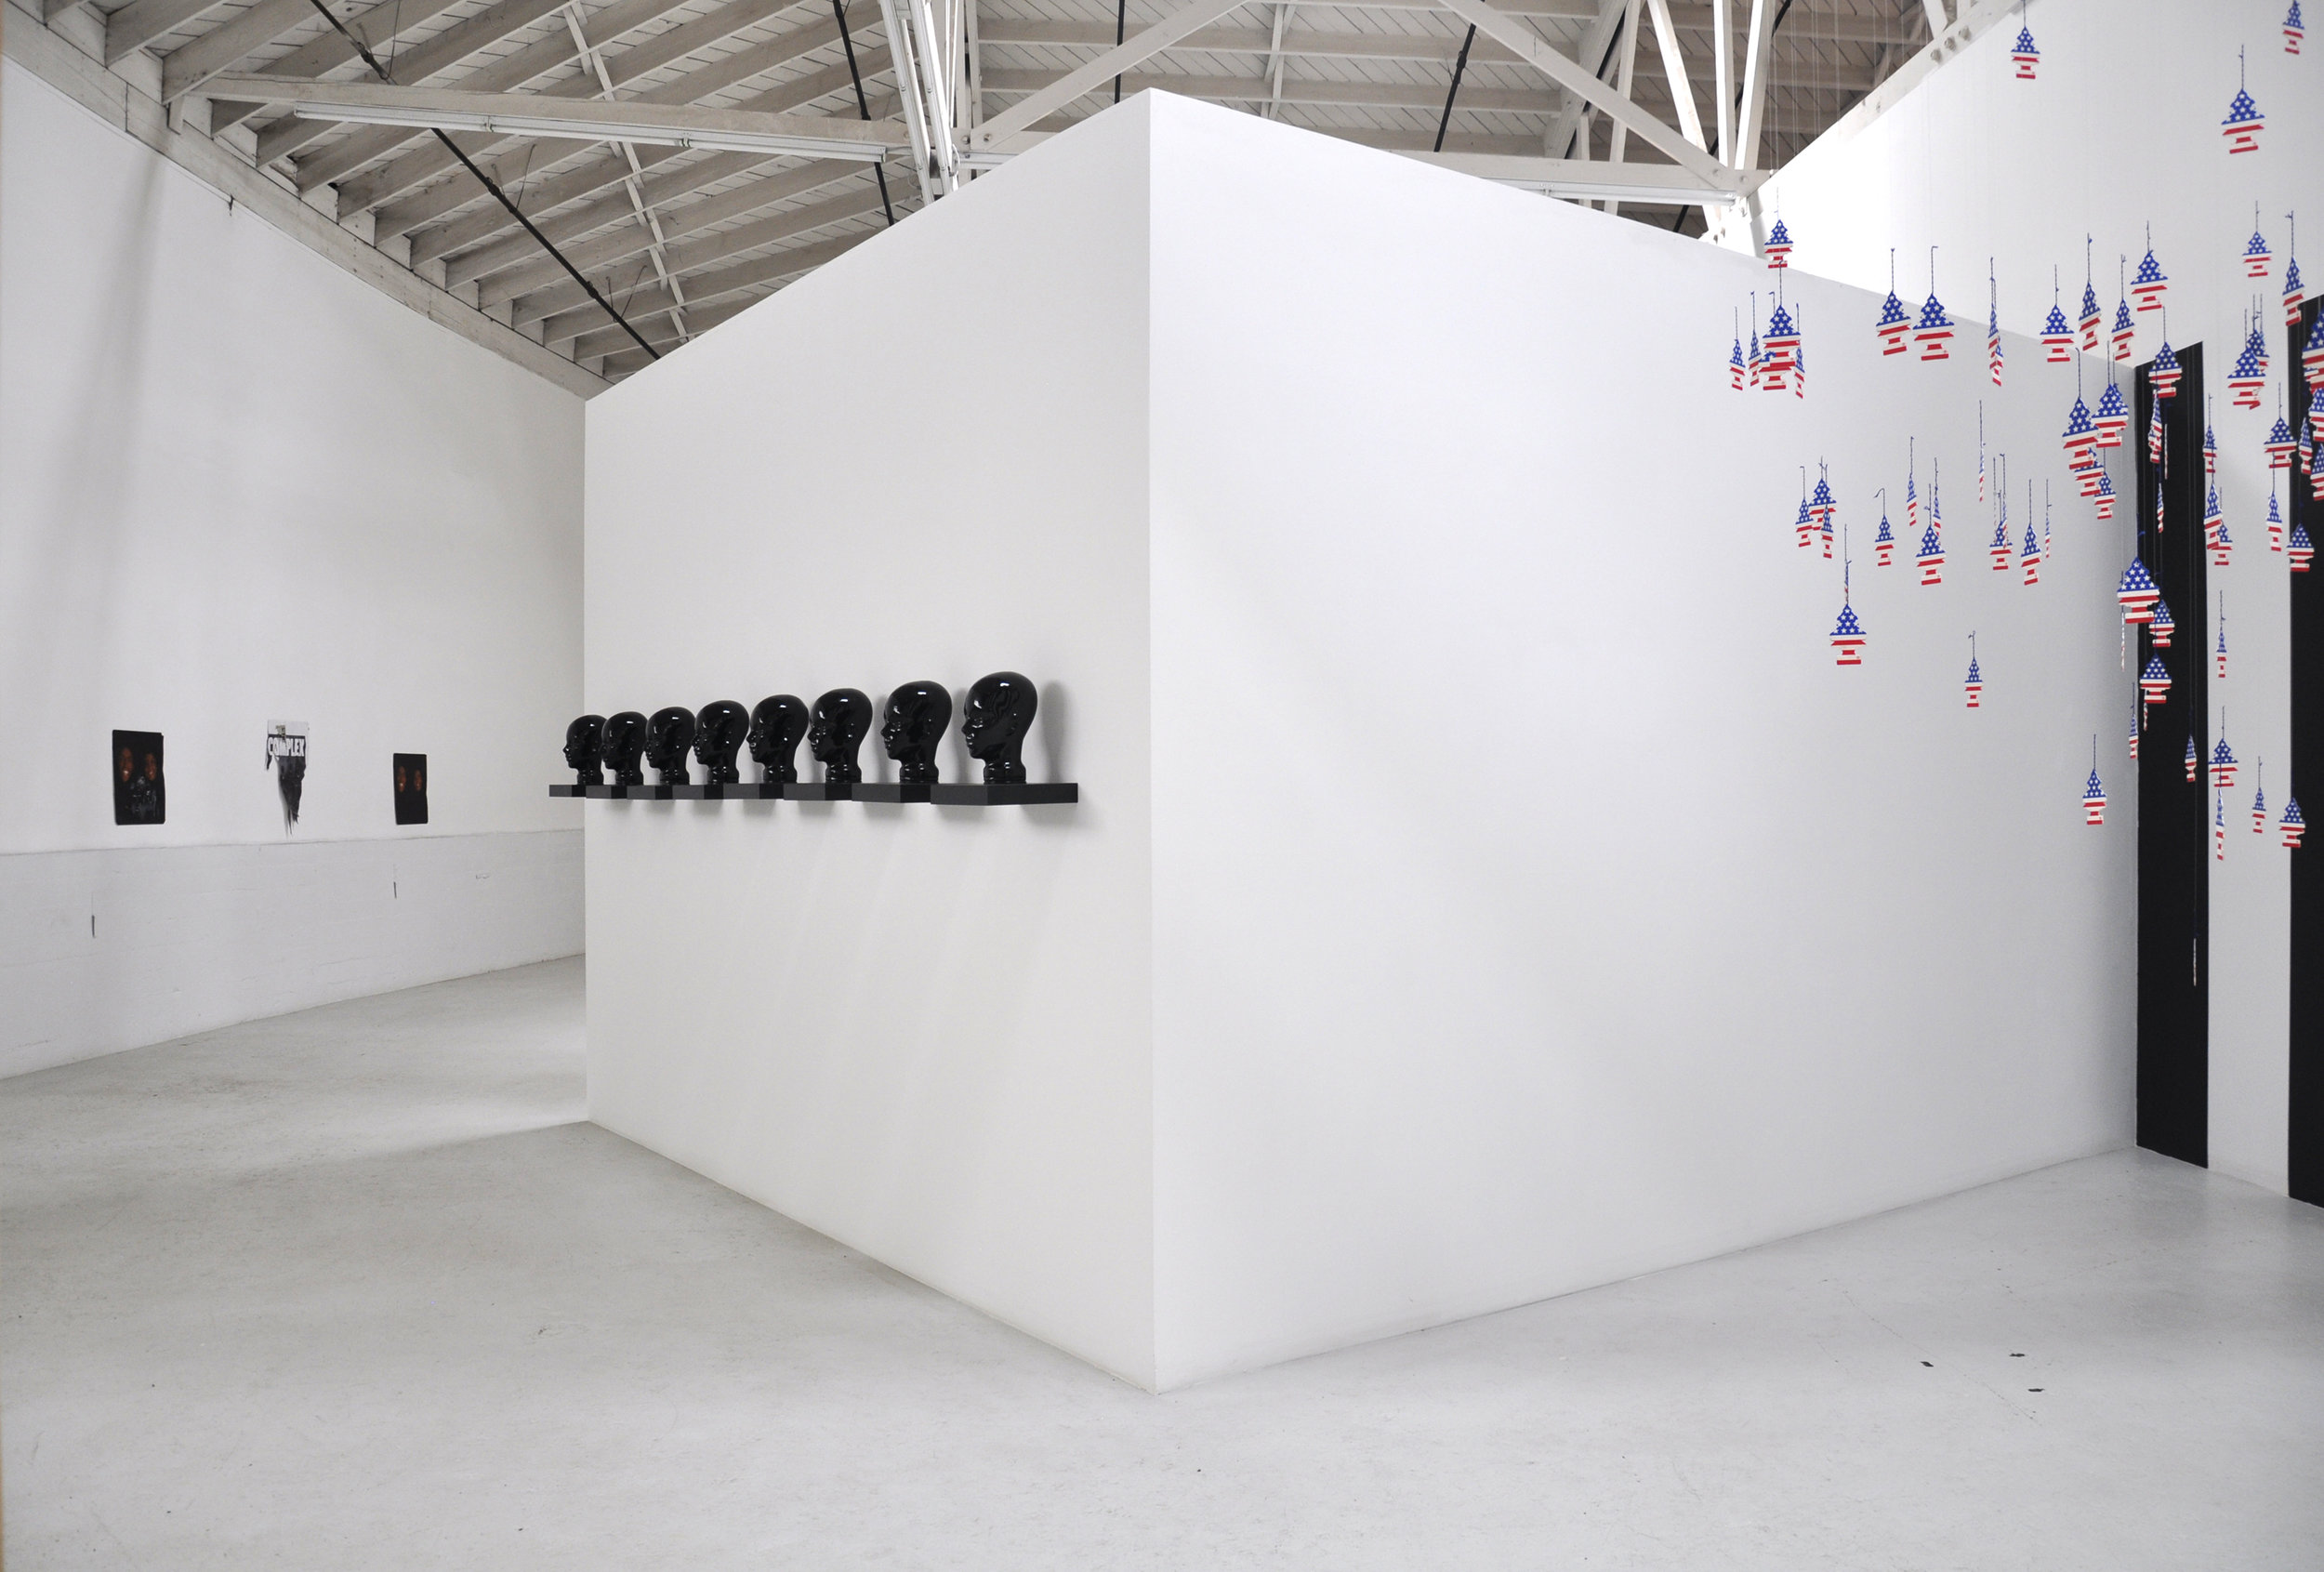 Installation View | 'A' and 'Op' Position to Nation